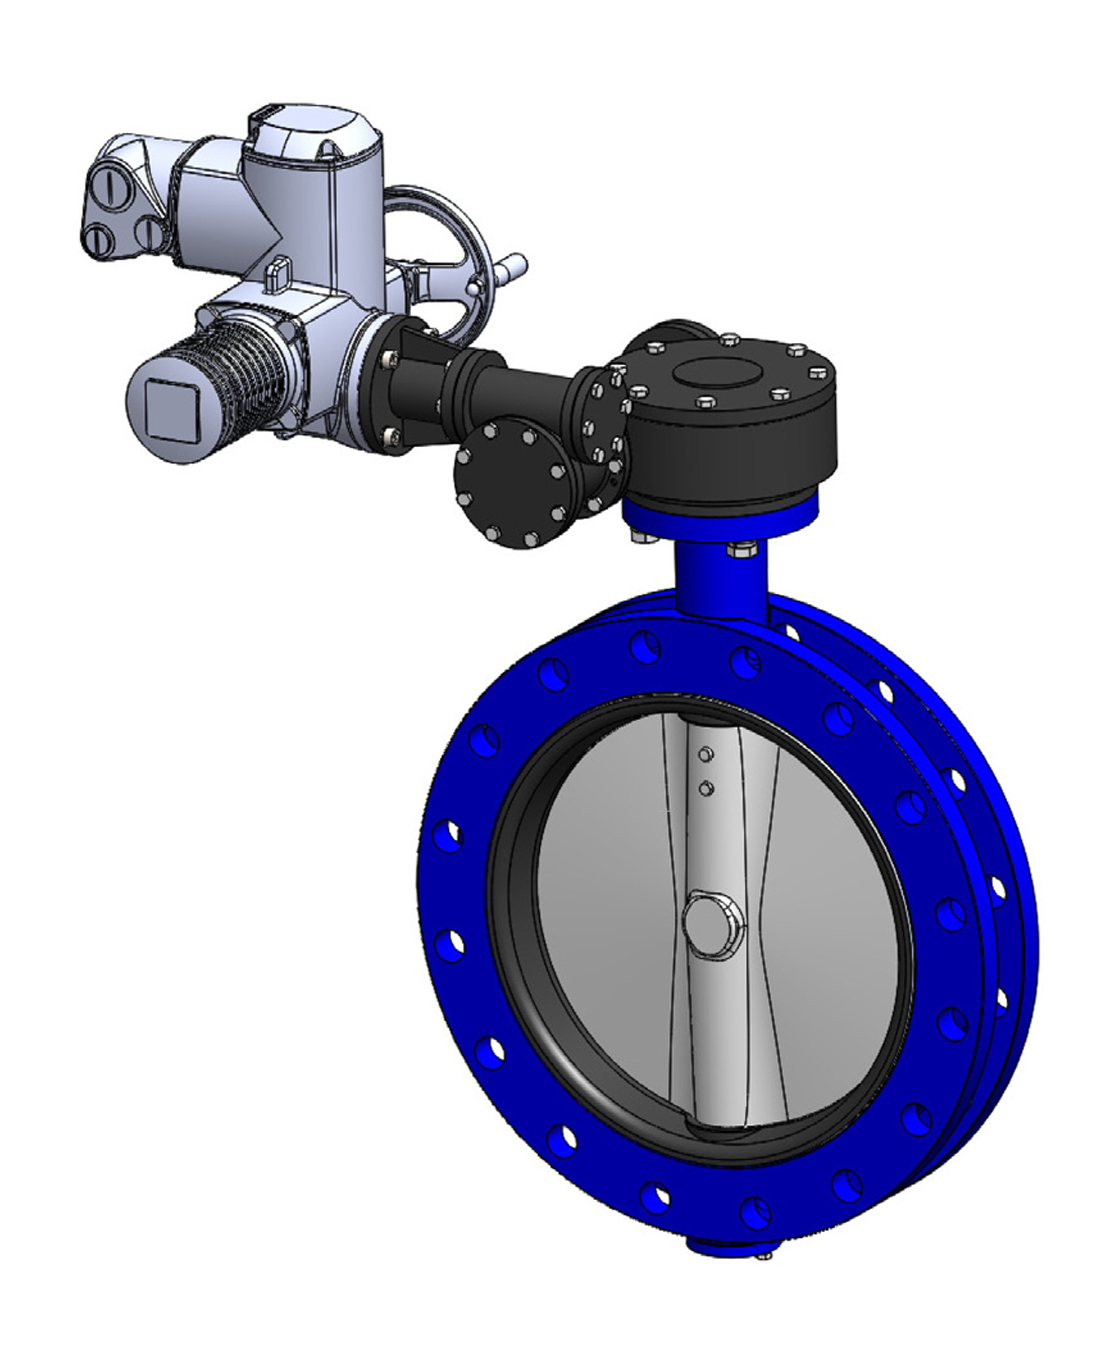 Double flanges type butterfly valve PN10 – ductile iron body – ductile iron disc – AUMA electric operator